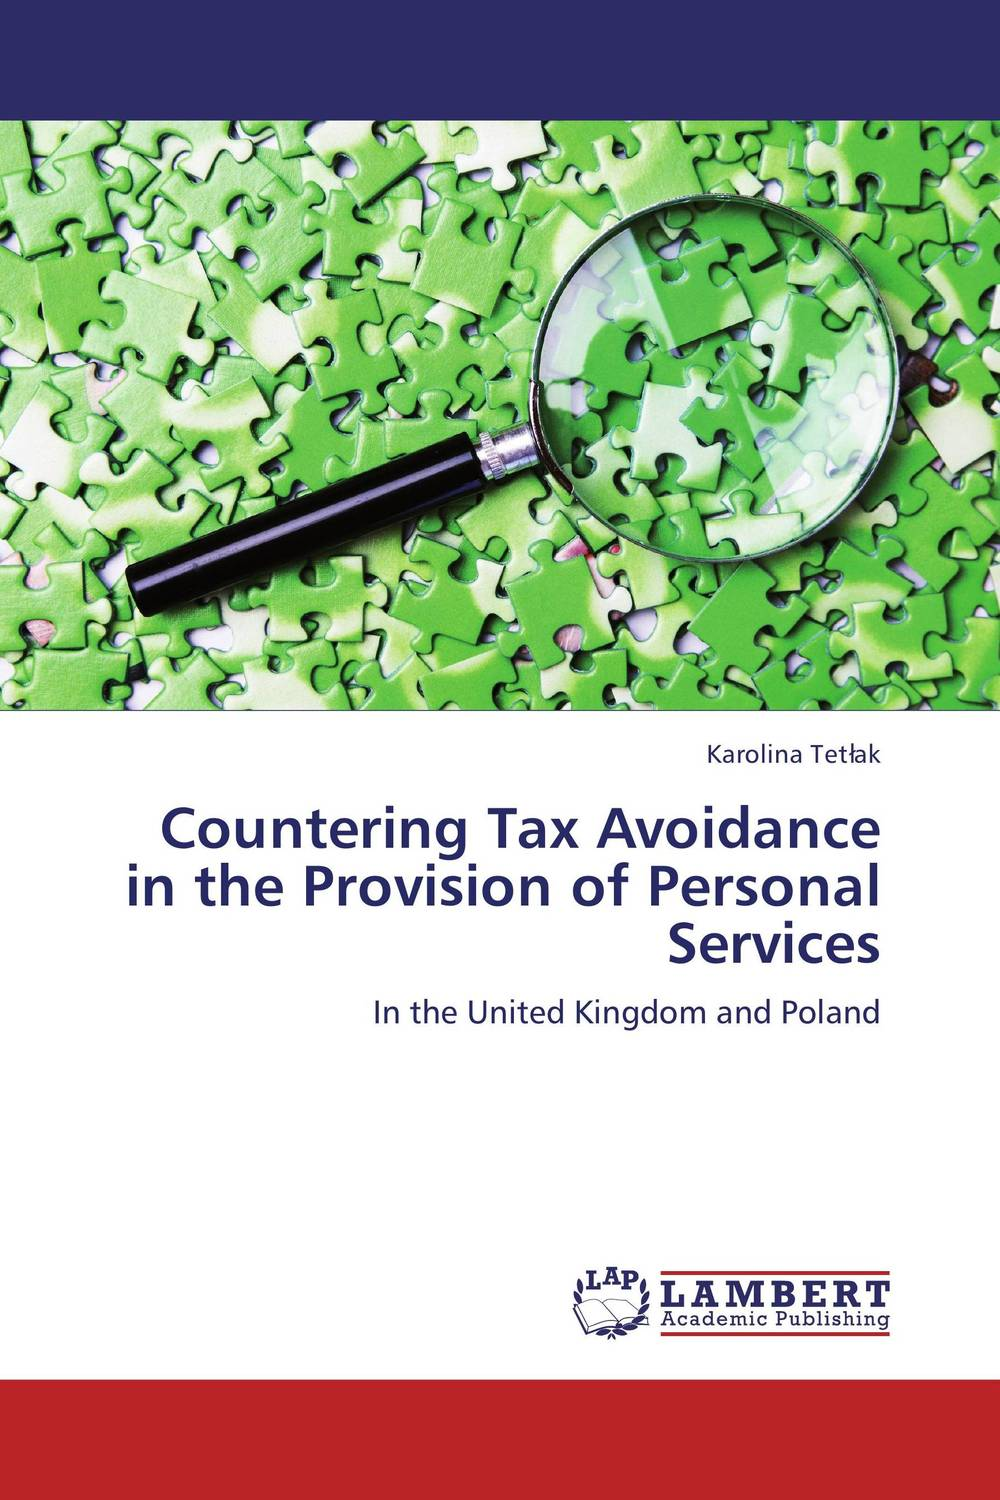 Countering Tax Avoidance in the Provision of Personal Services